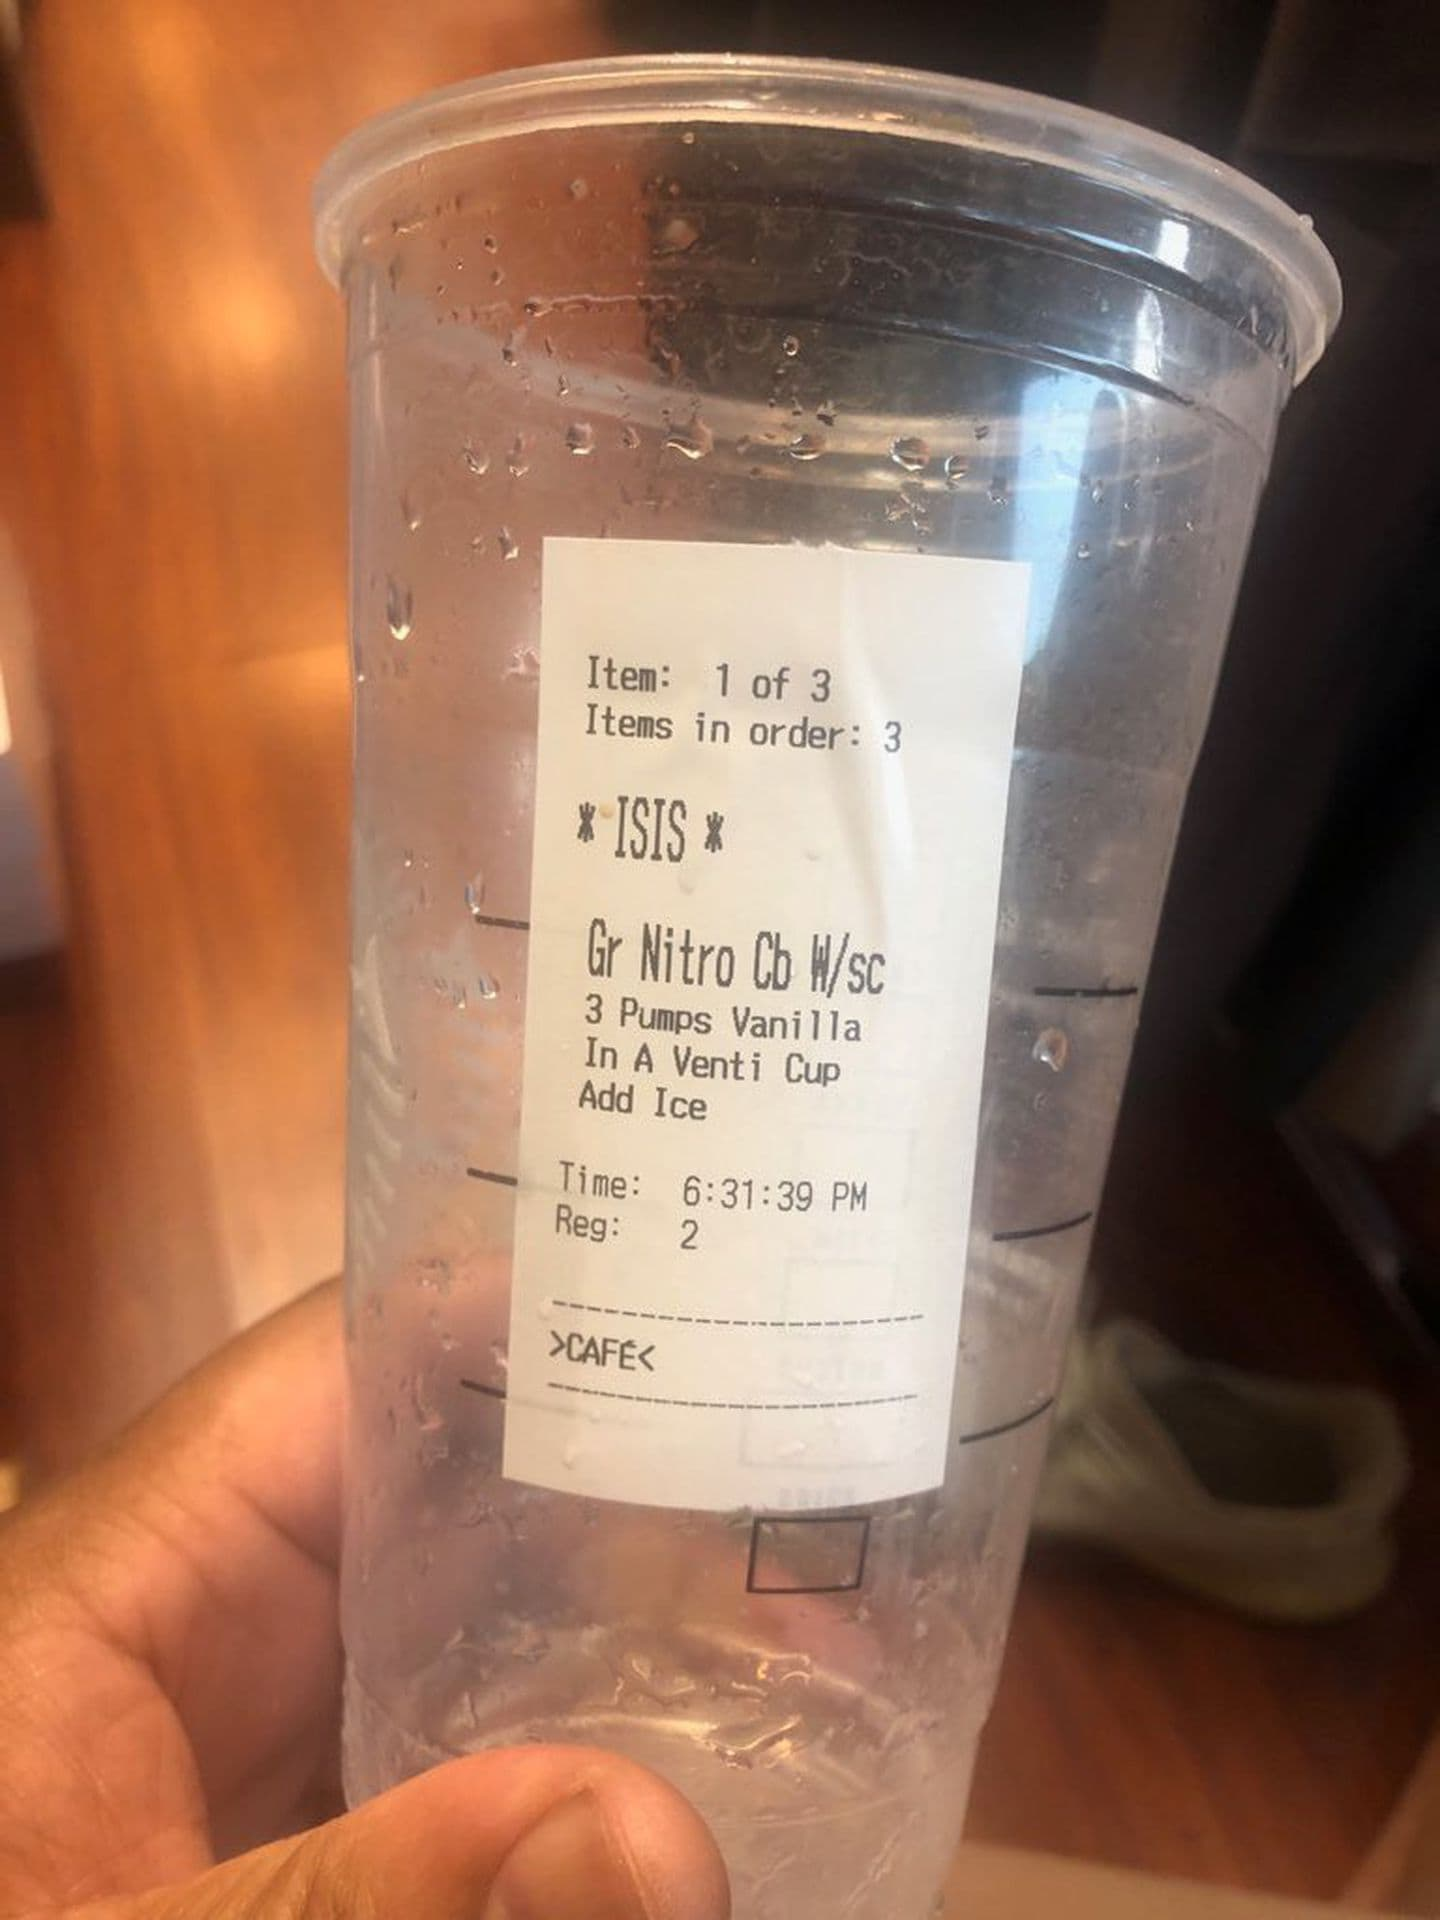 A man in Islamic dress told a Starbucks employee his name was Aziz. She put 'ISIS' on the cup